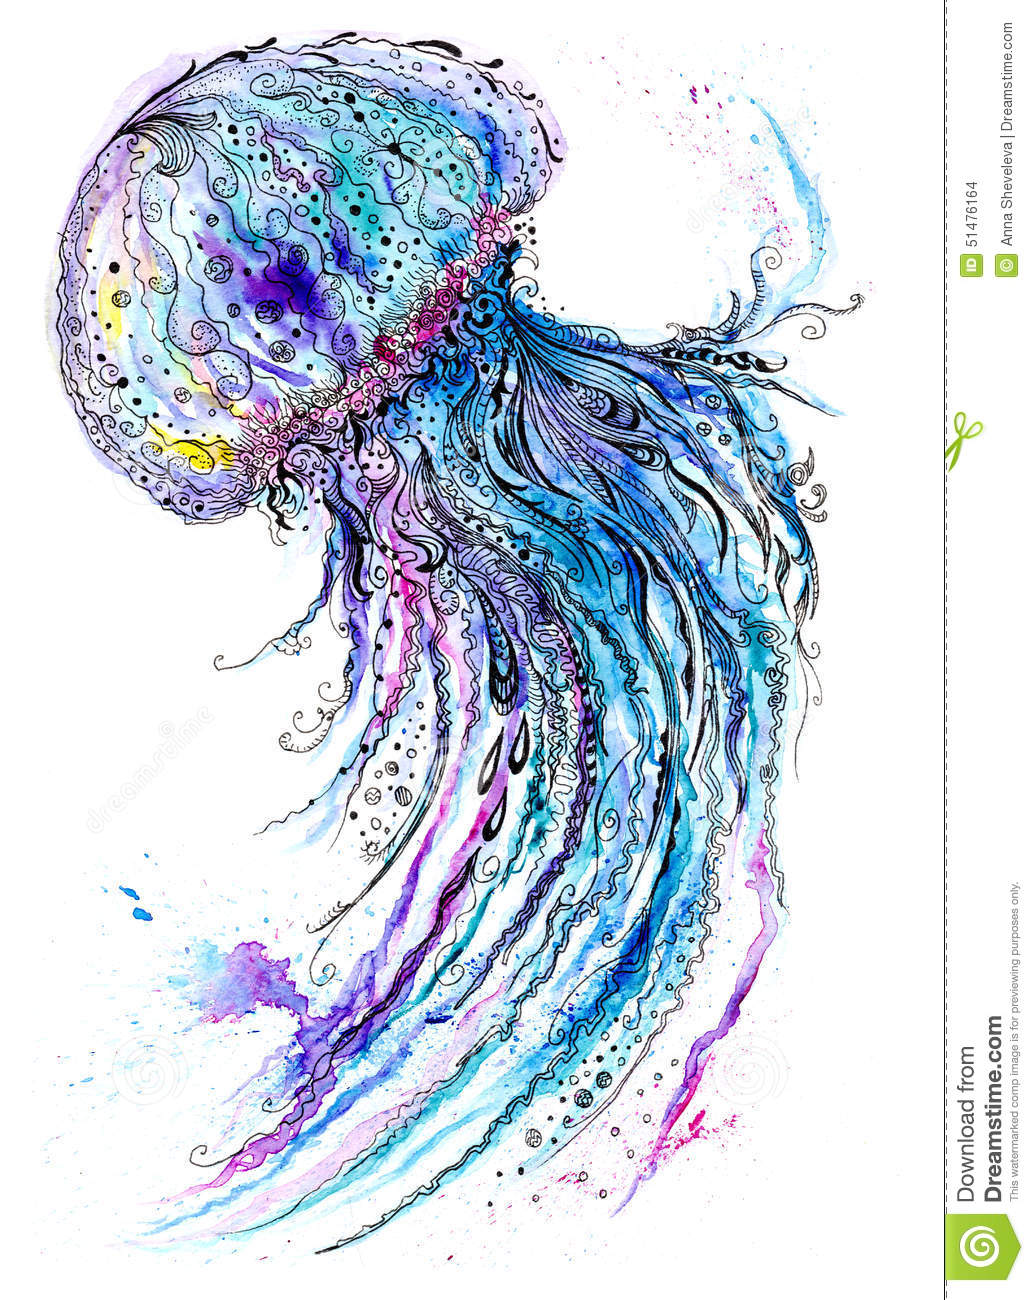 Jelly fish watercolor and ink painting stock illustration for Sea life paintings artists